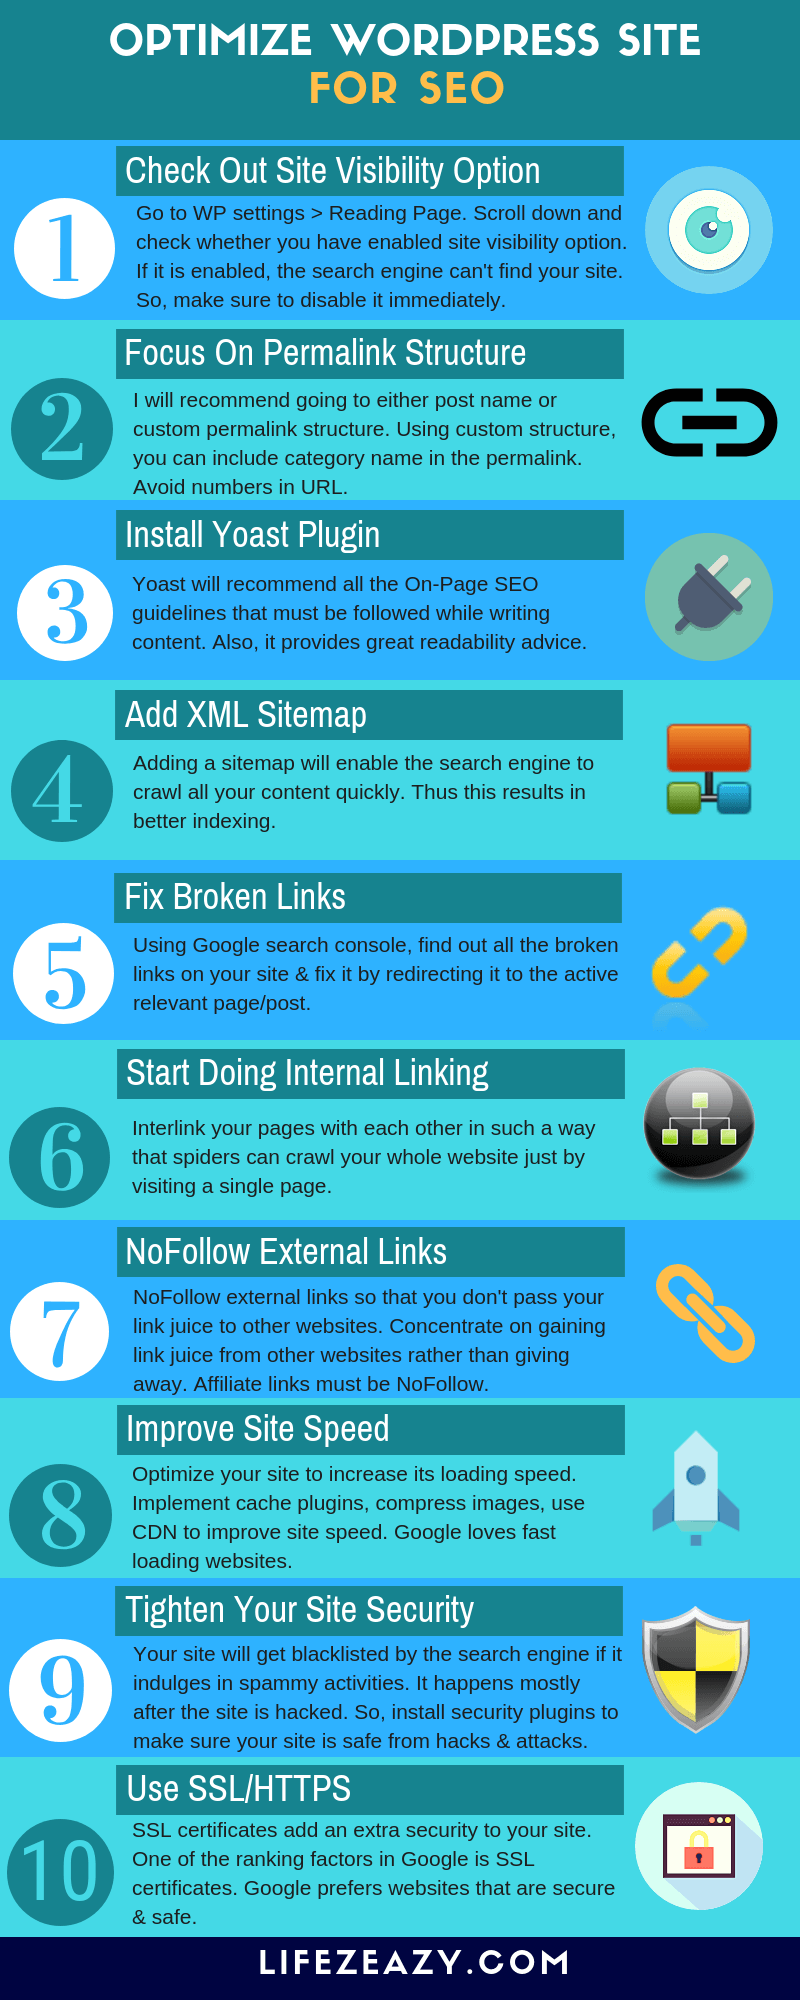 If you want to optimize WordPress site for SEO, check out these 10 steps to make your site SEO friendly. #seo #wordpressseo